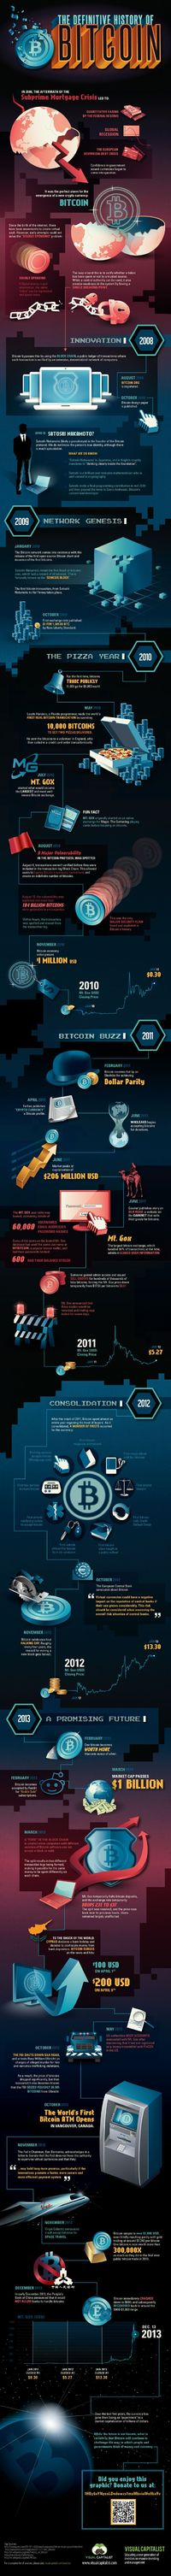 The Definitive History of Bitcoin.